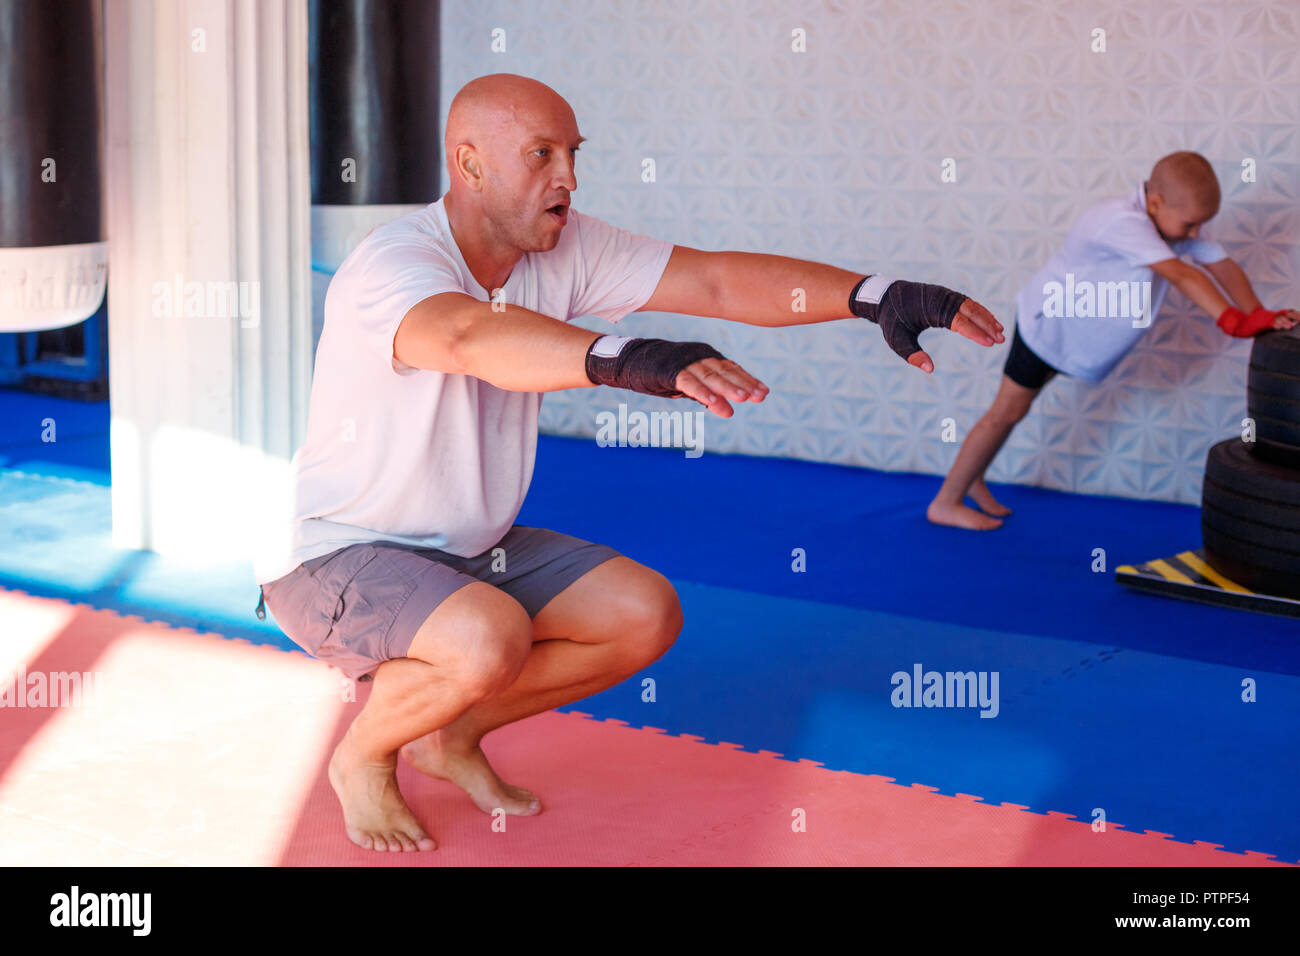 Boxing training in the gym, the concept of sports development. Stock Photo